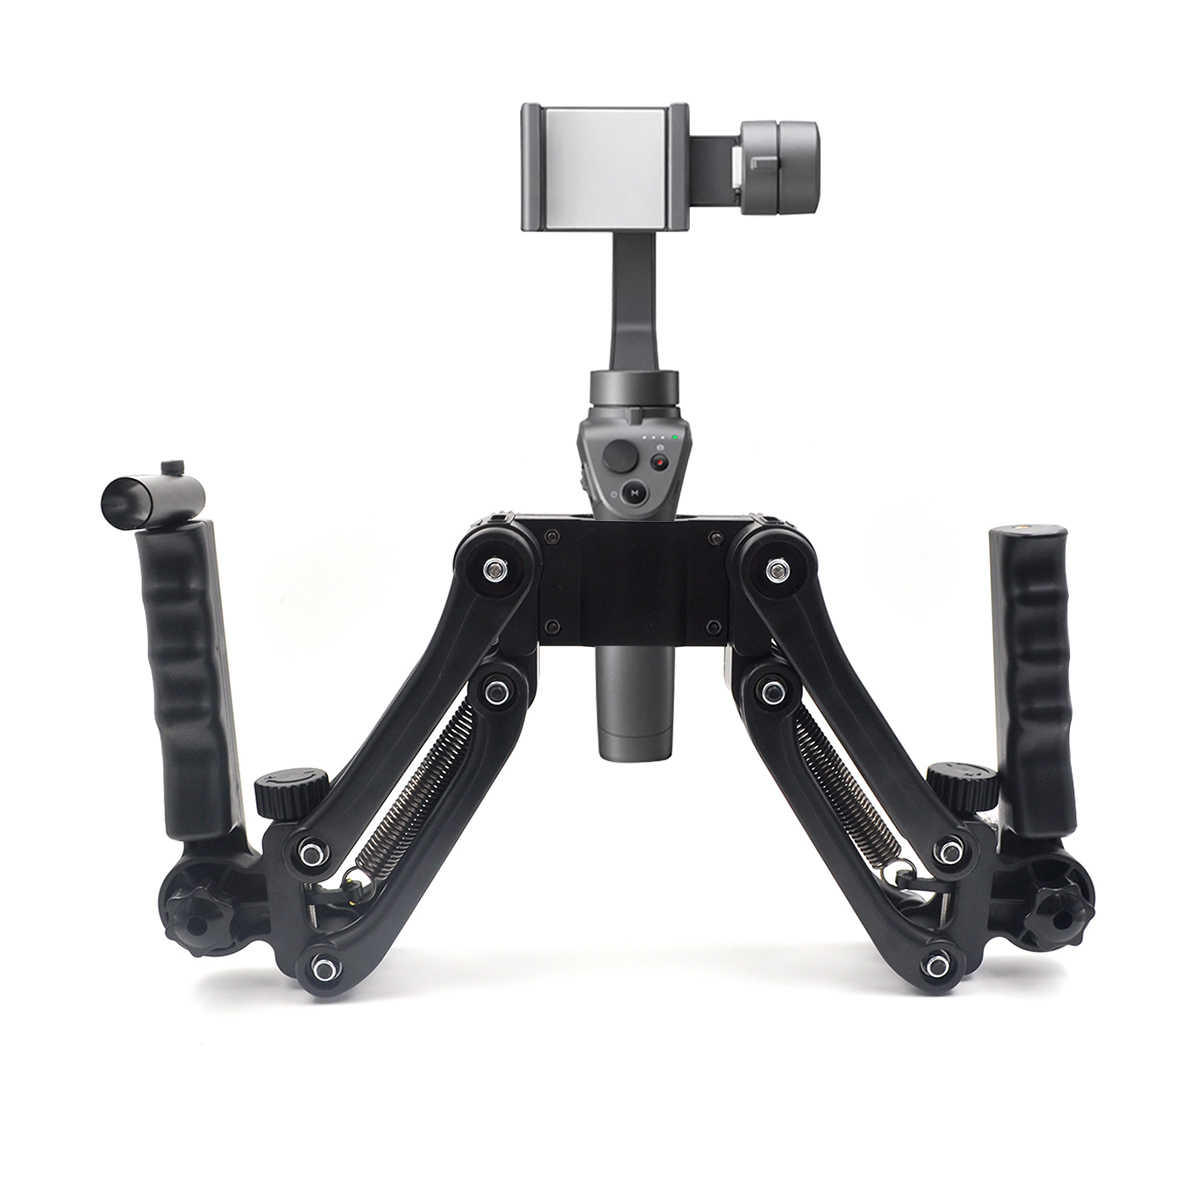 4th-Axis-gimbal-stabilizer.jpg